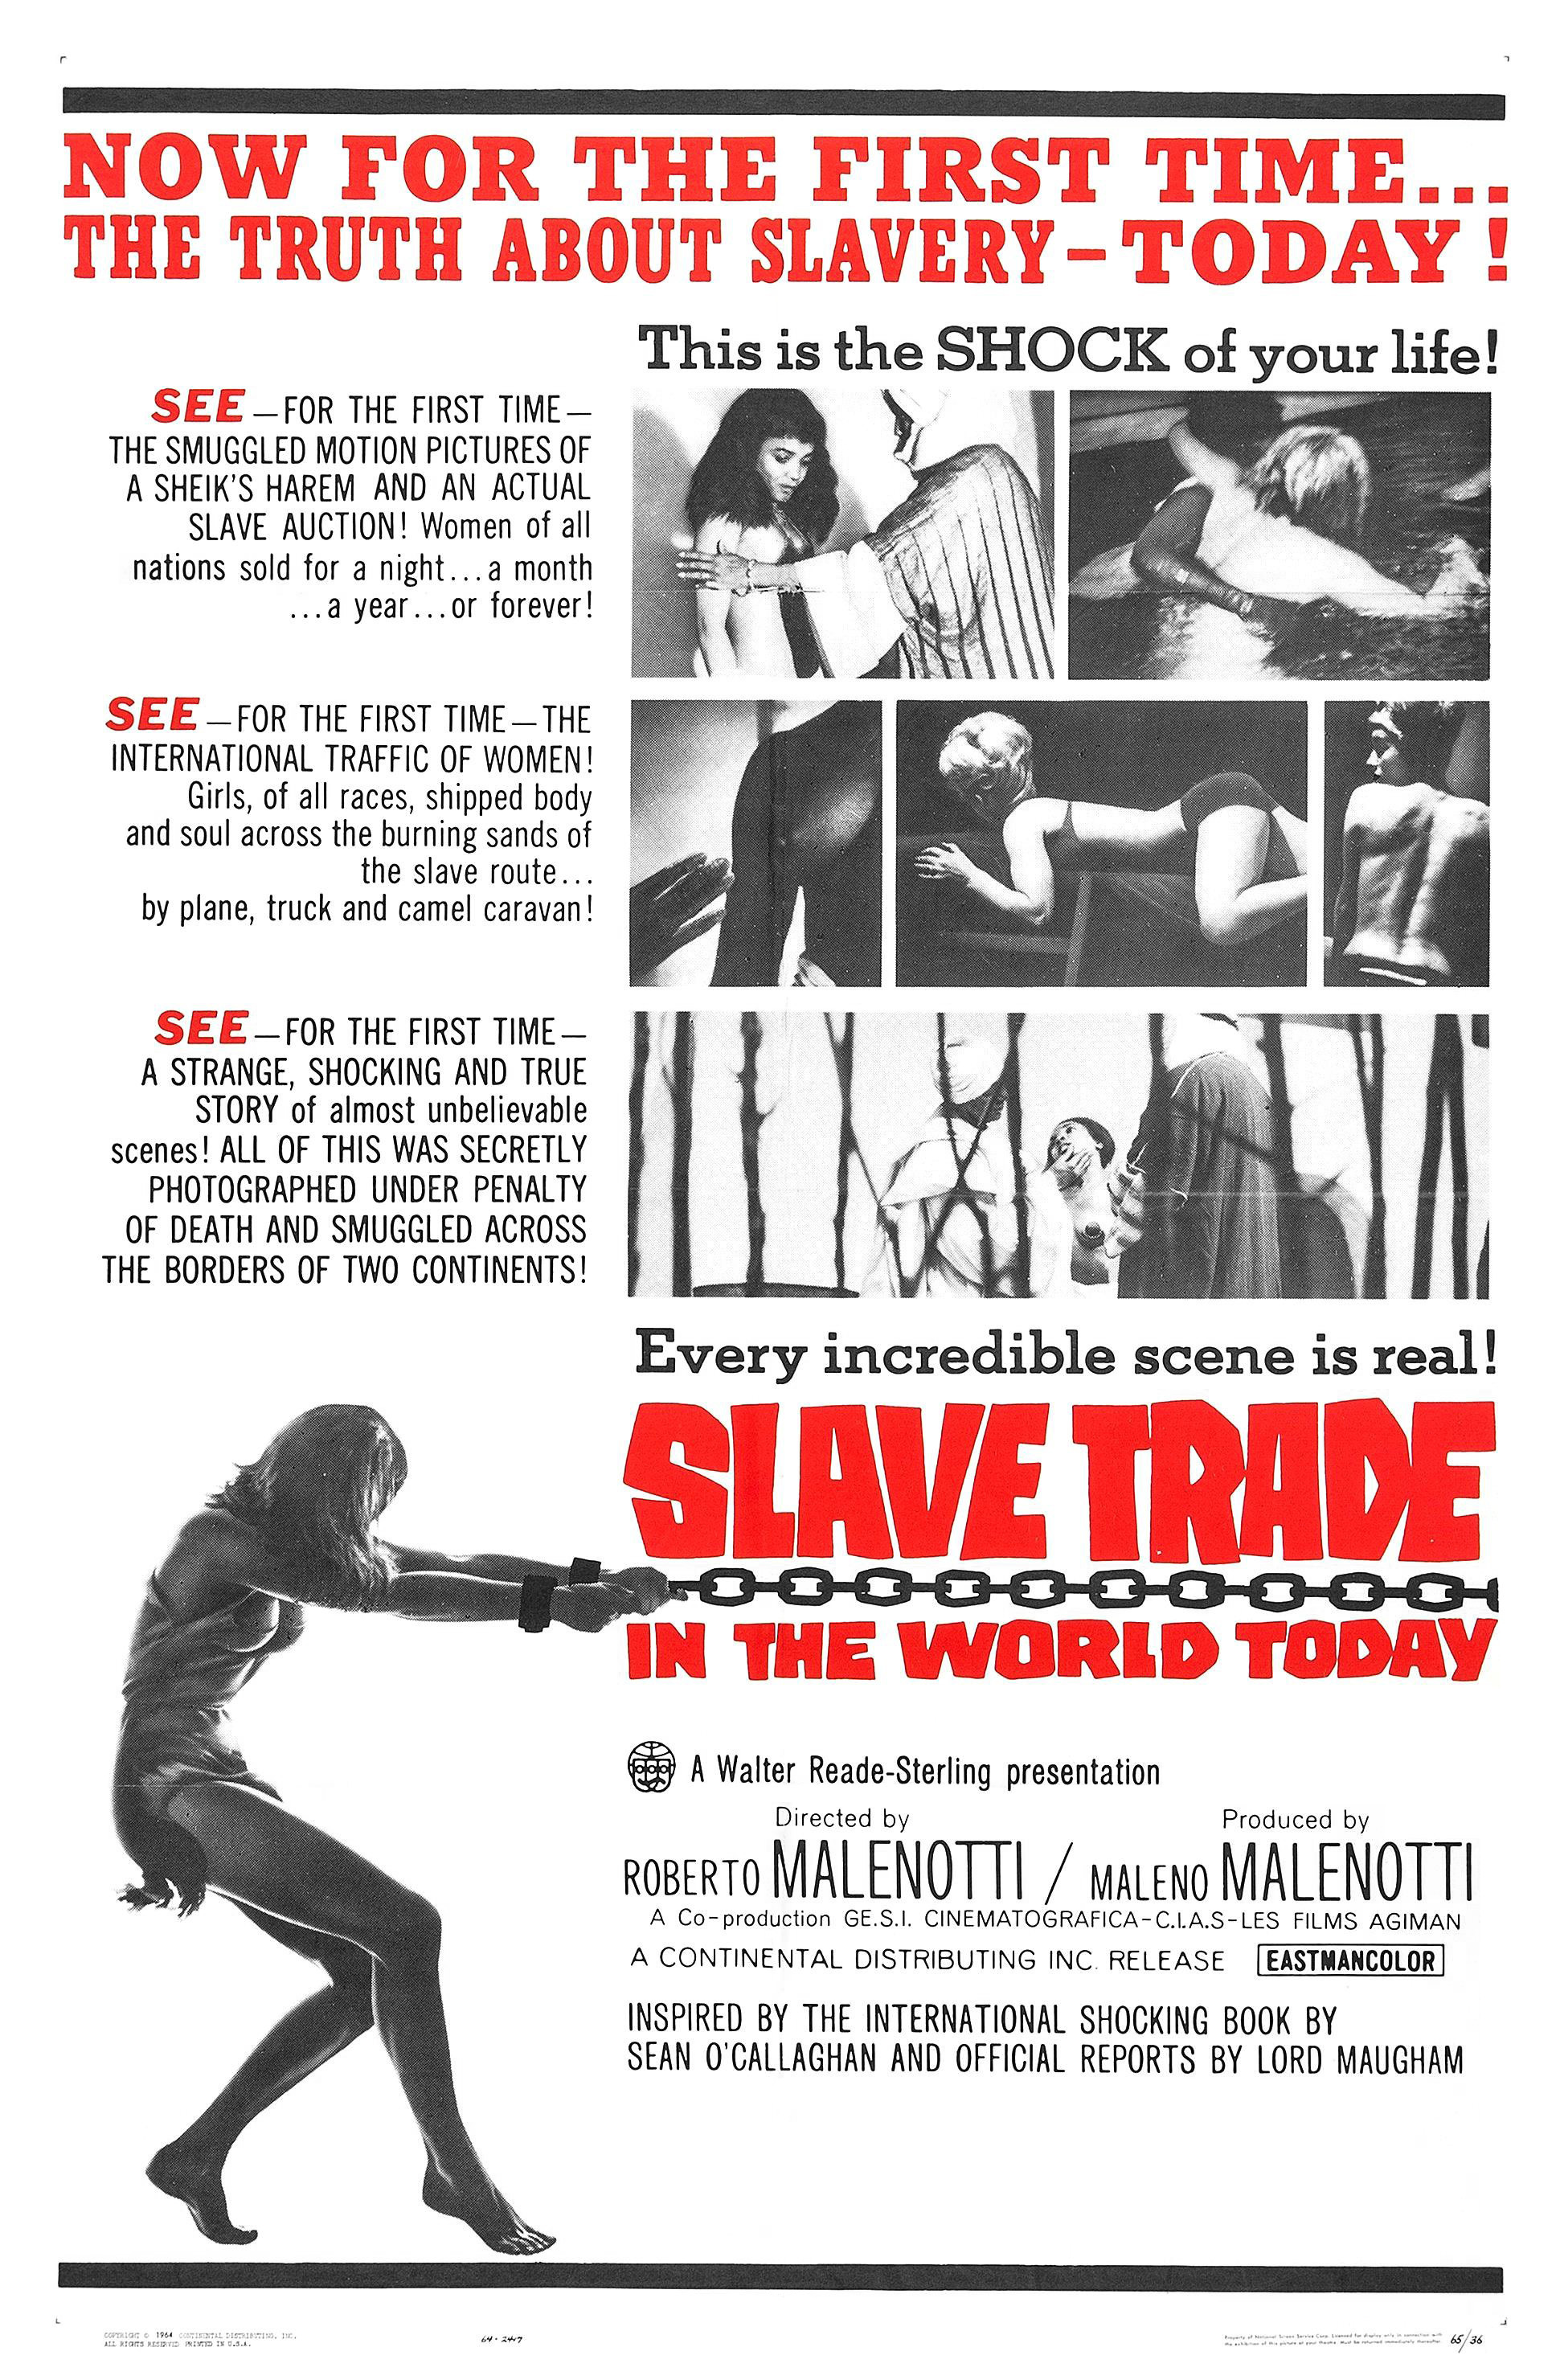 Slave trade today nude movie